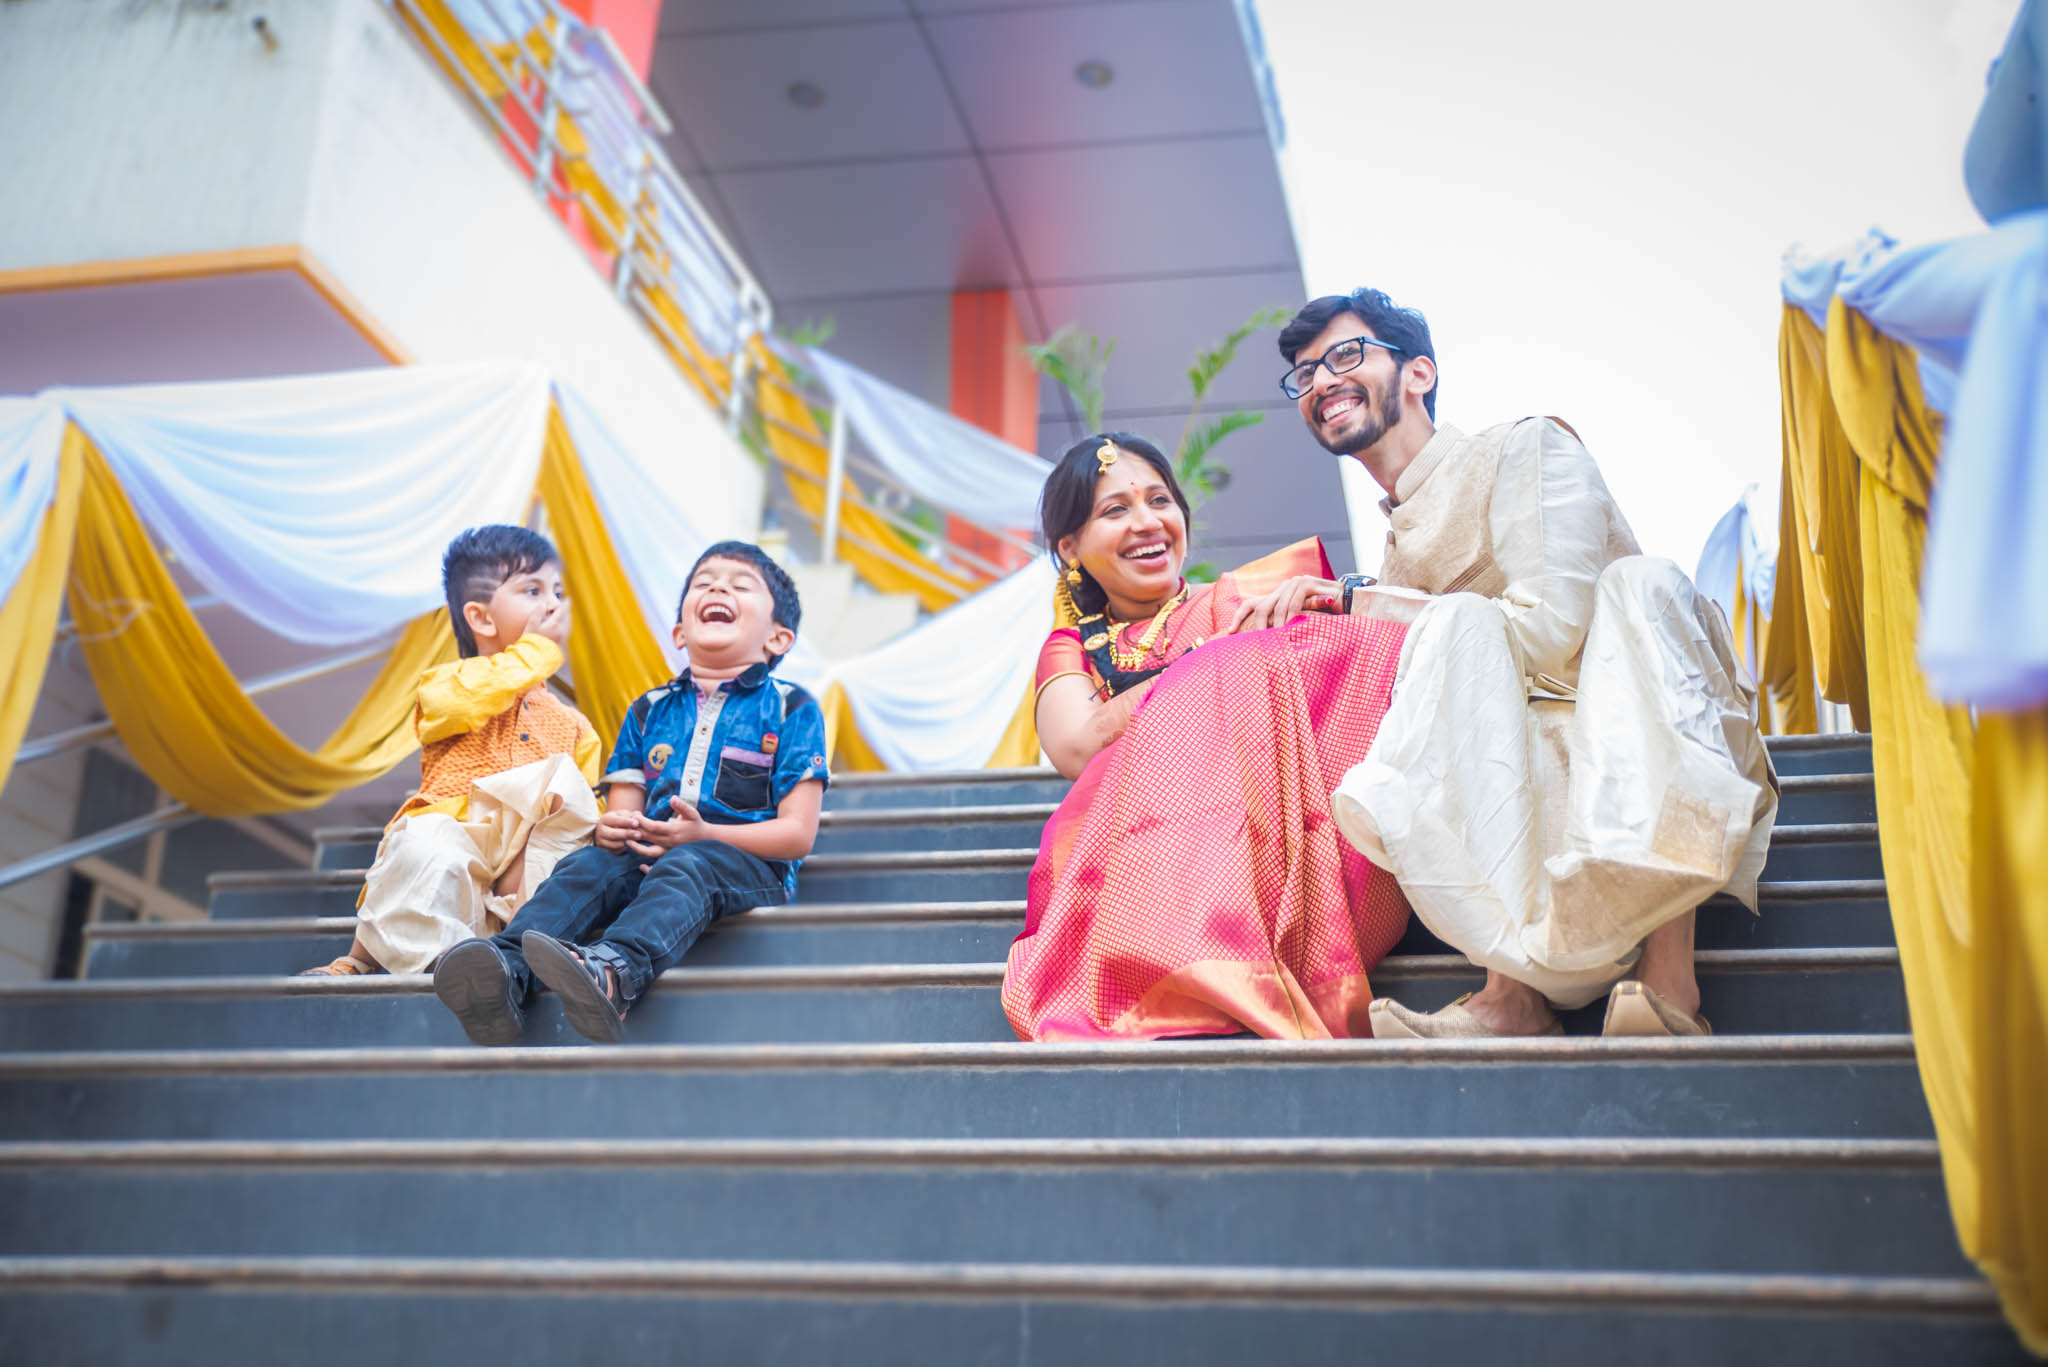 WhatKnot-Candid-Wedding-Photography-Mumbai-Bangalore-221